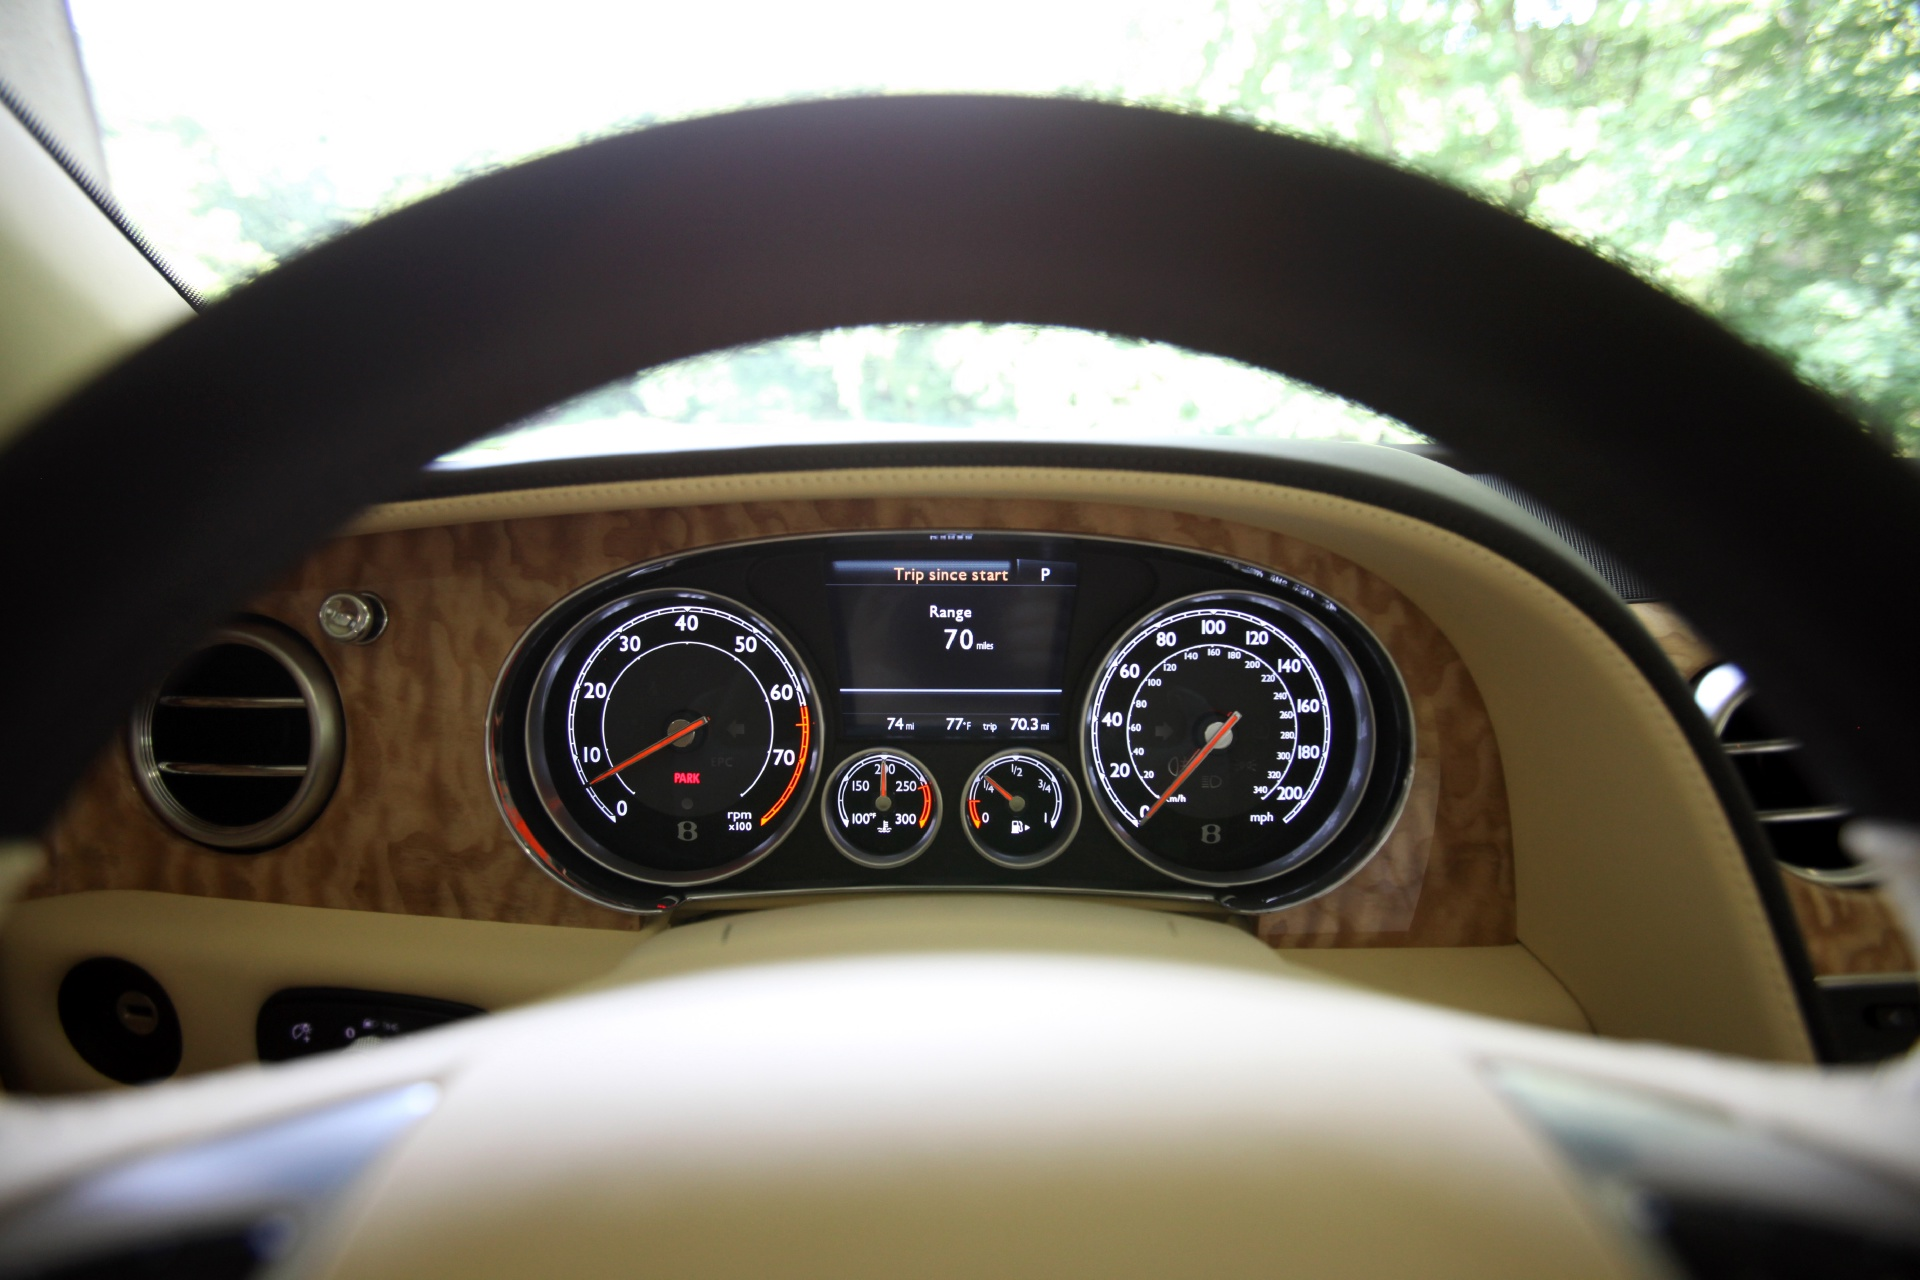 2014 Bentley Flying Spur W12 Stock 4NC for sale near Vienna